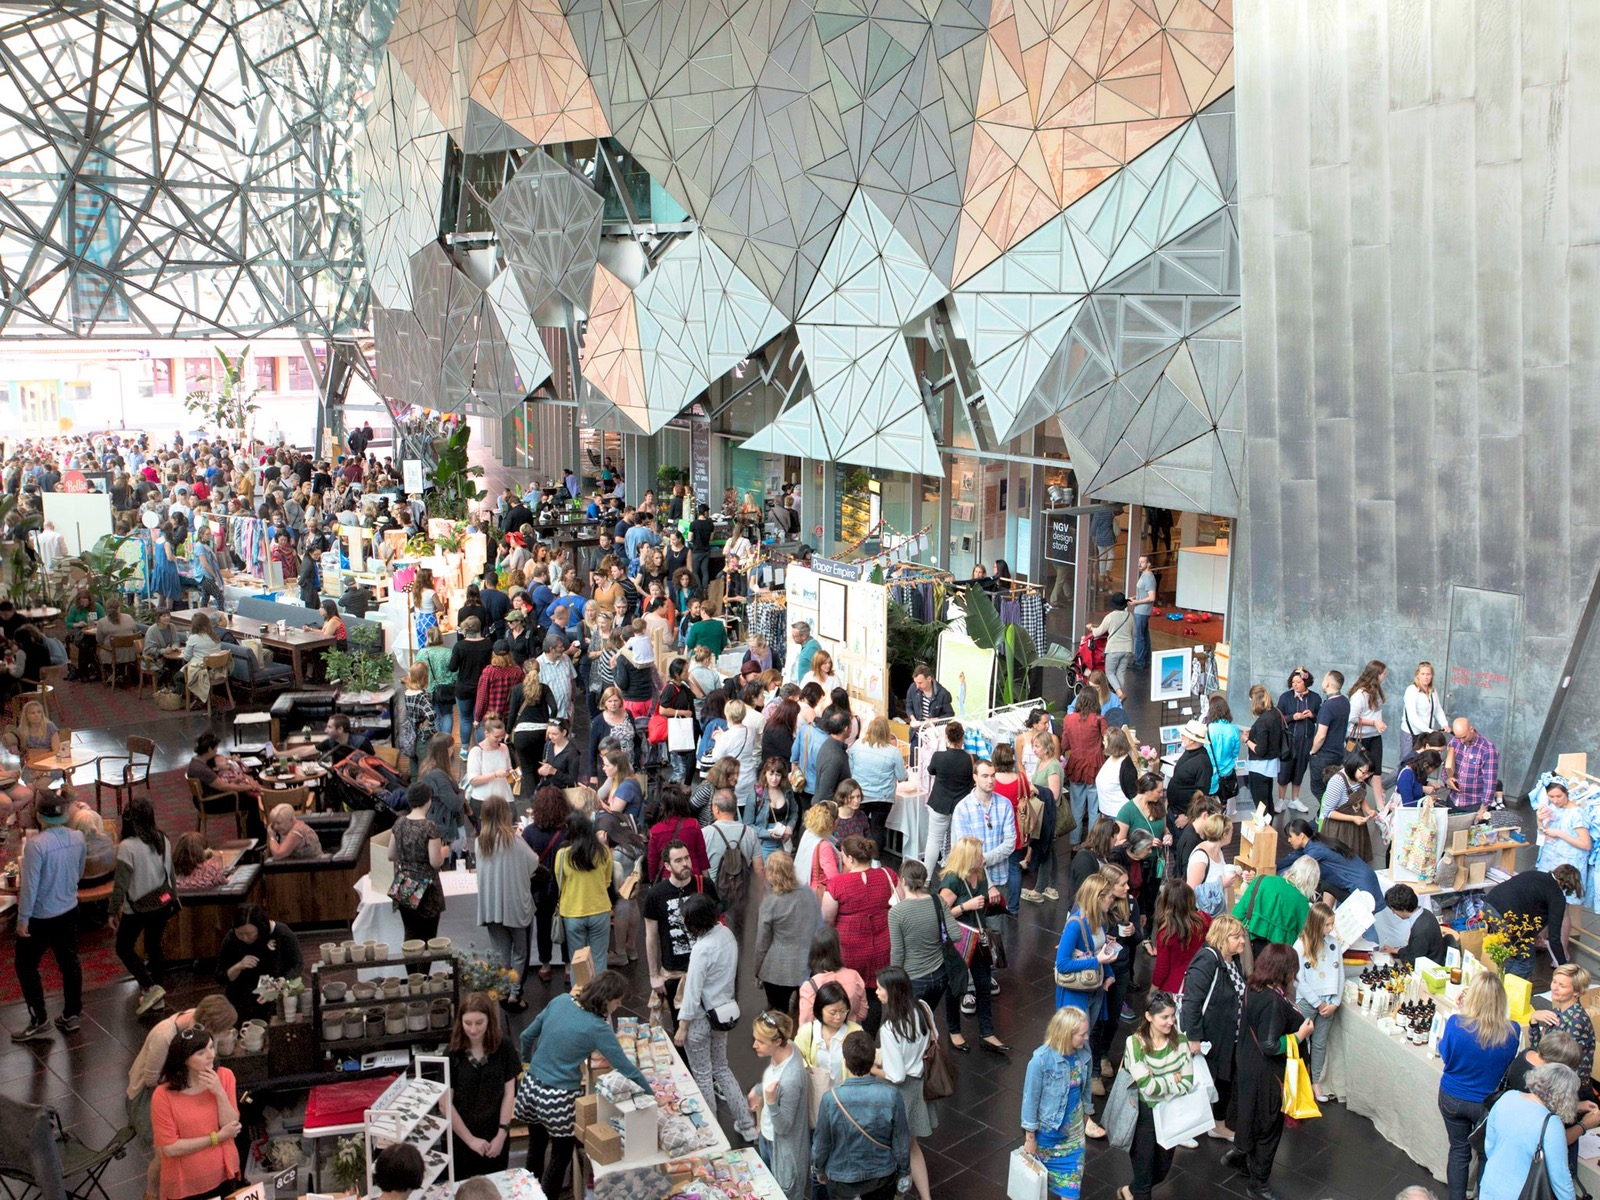 Markit@FedSquare – The Atrium and Deakin Edge Theatre, Federation Square